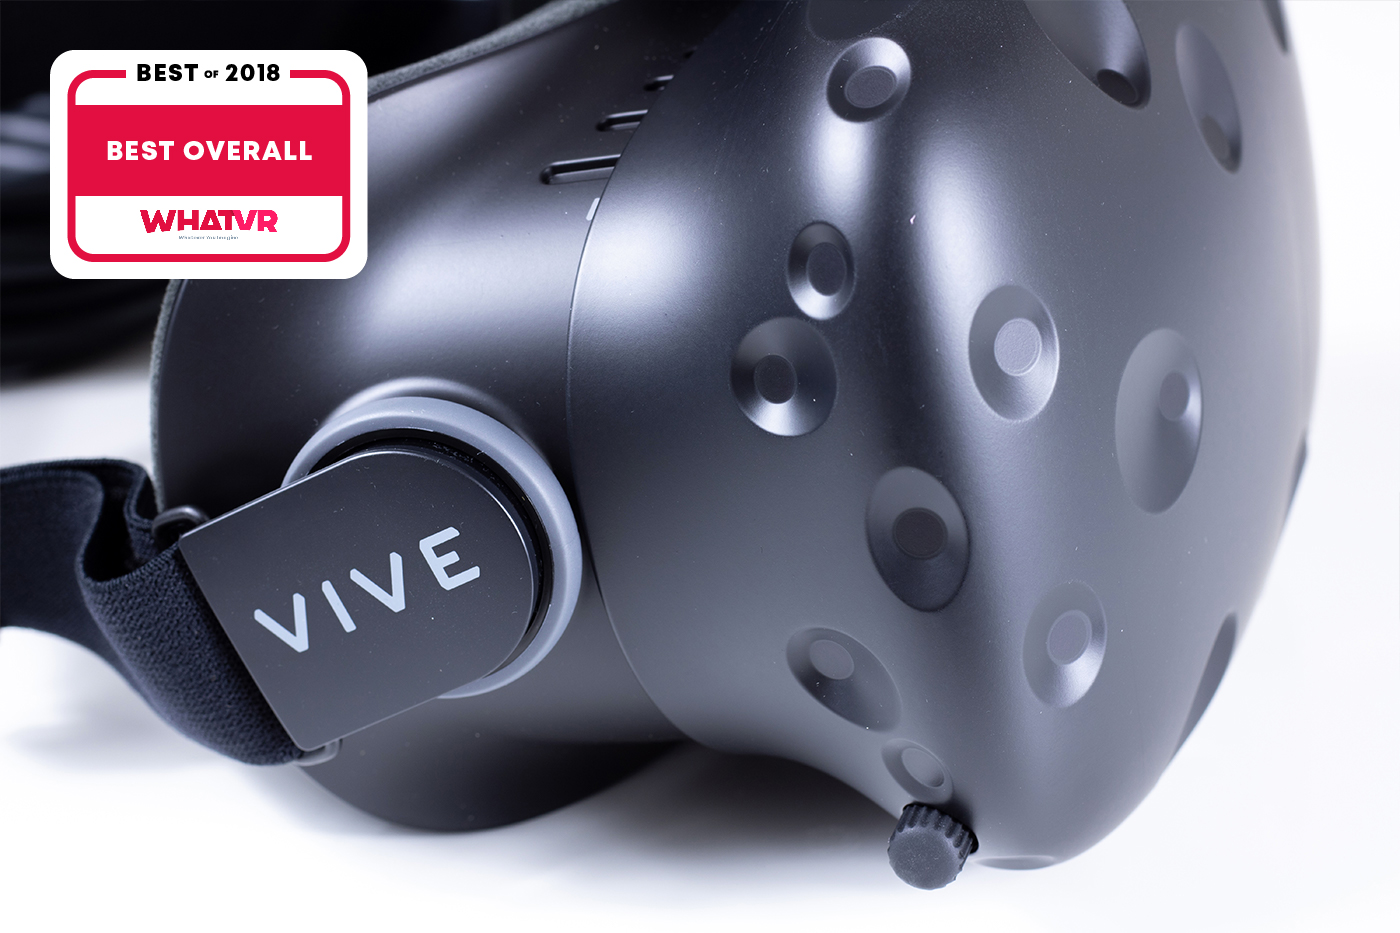 Vive HTC with WhatVR award of best overall VR headset in 2018.